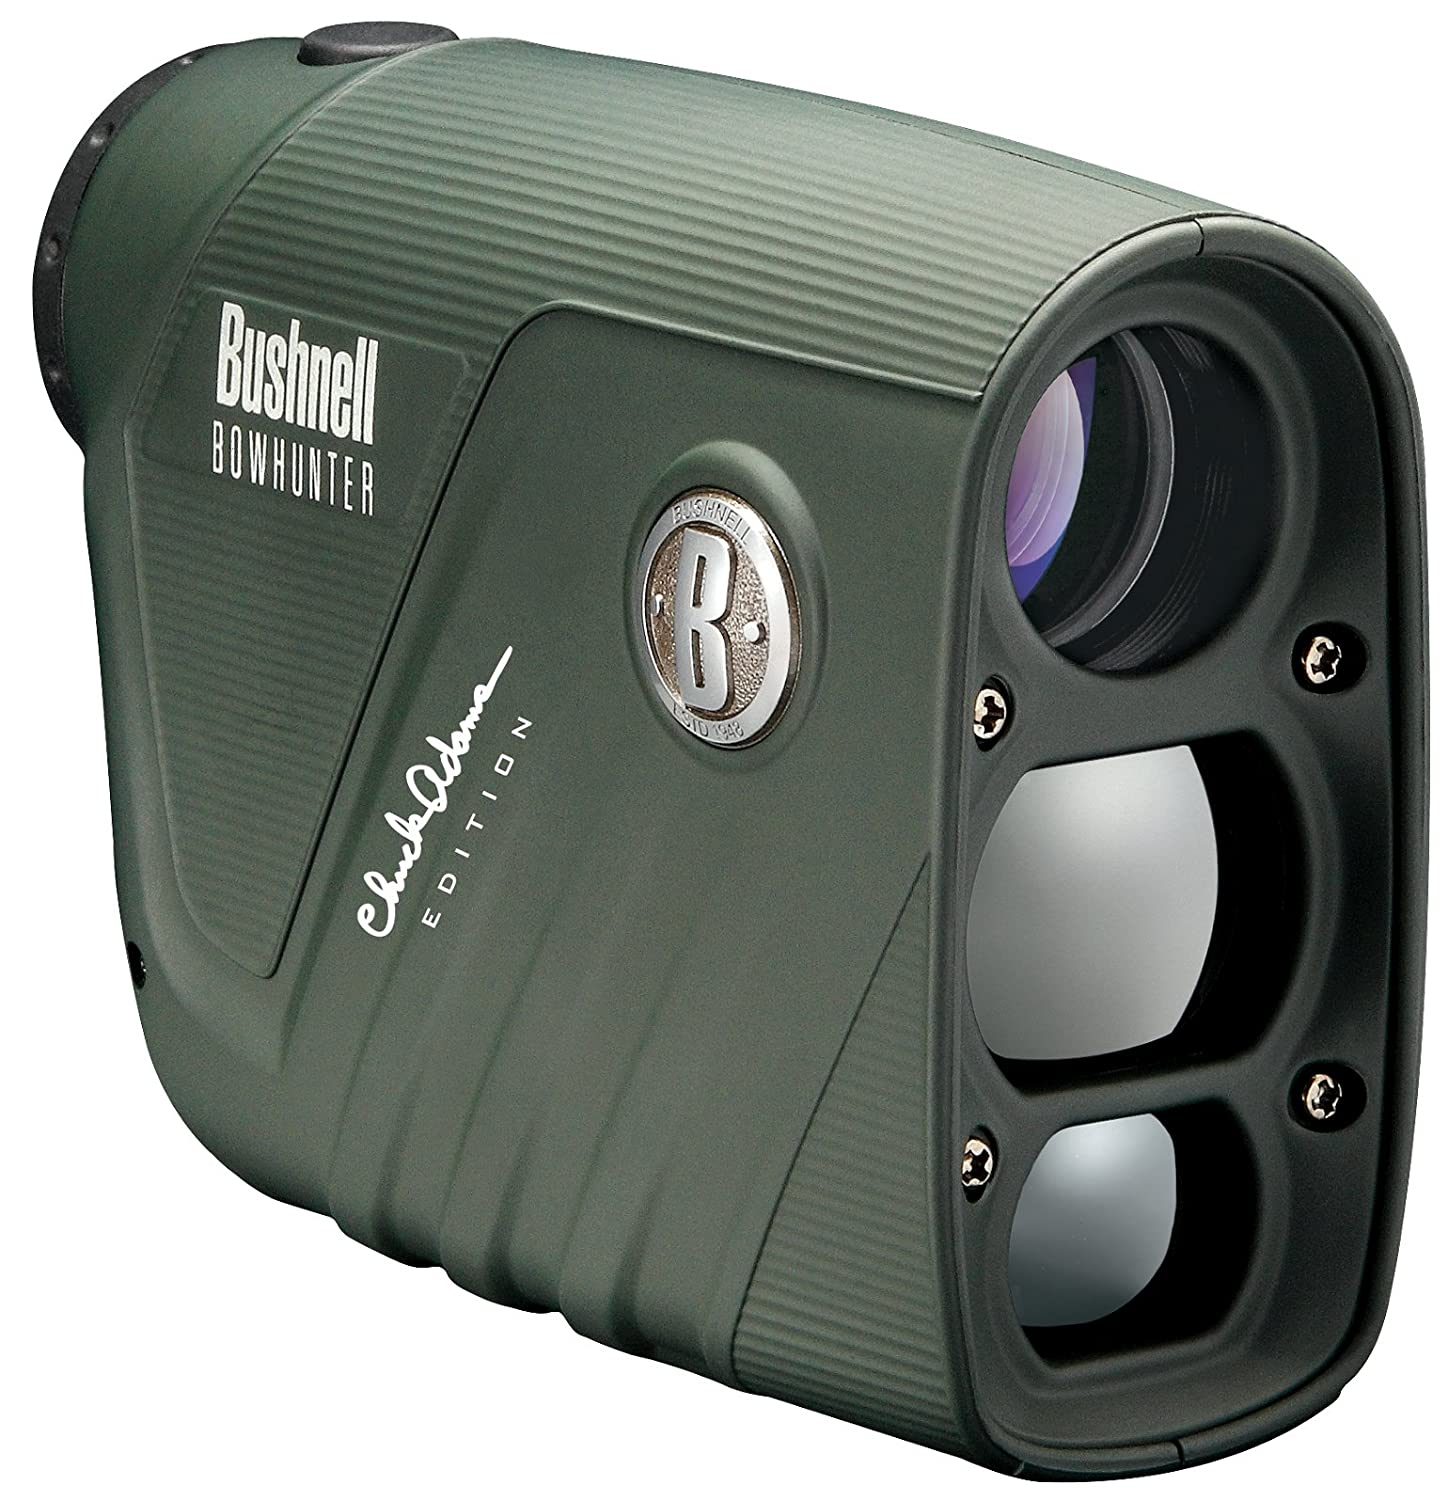 Bushnell-BowHunter-Chuck-Adams-img-amz